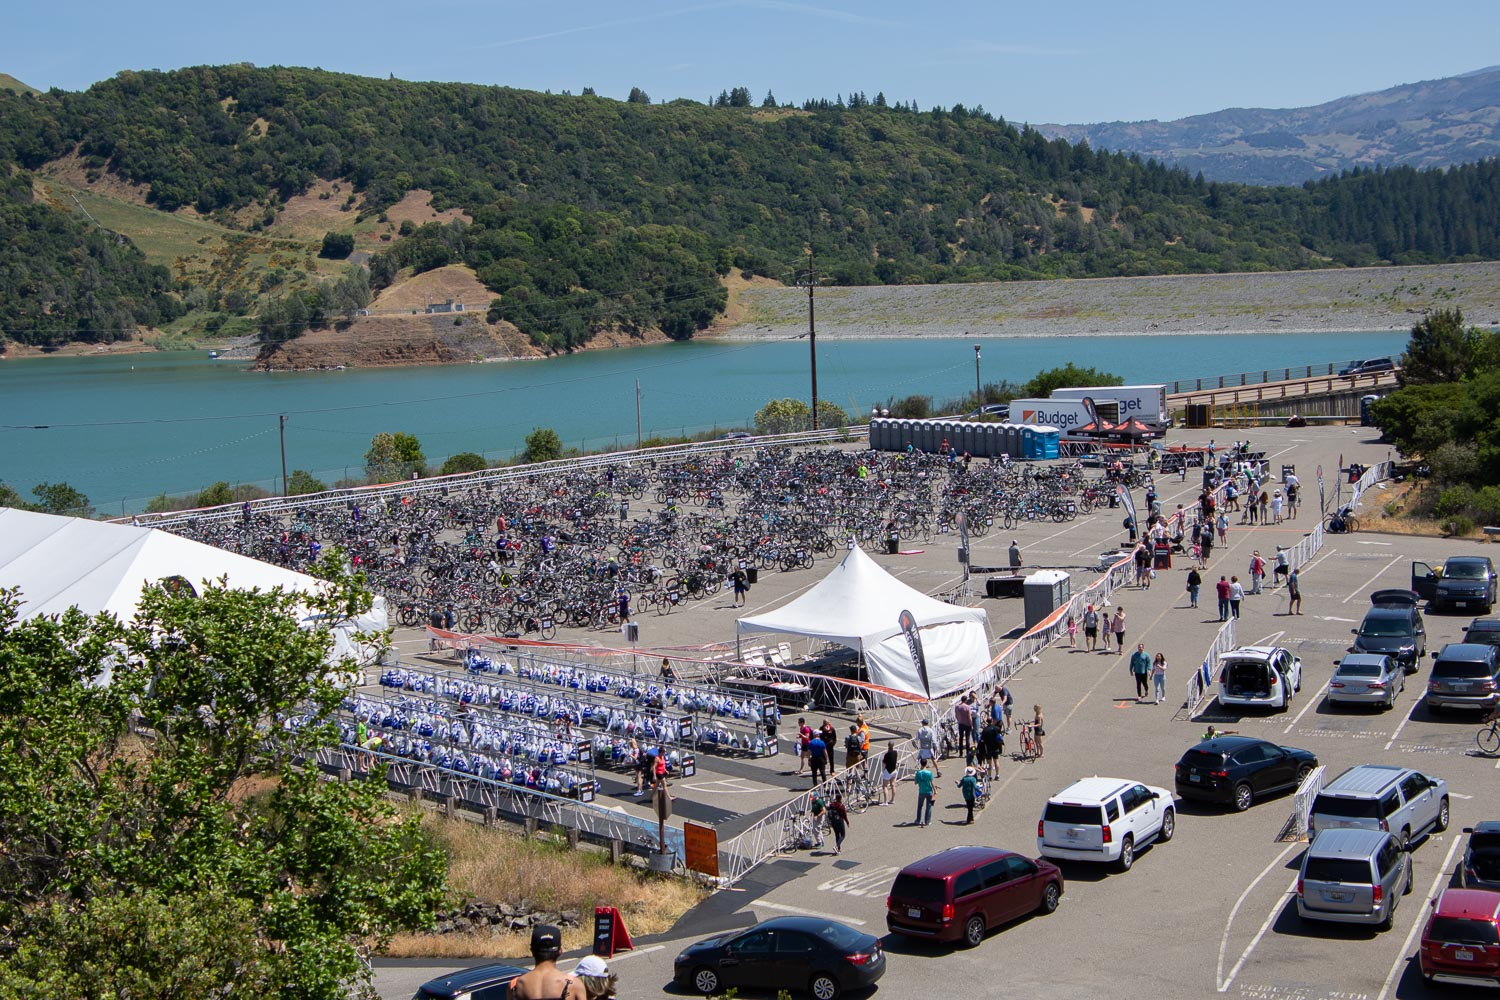 Ironman swim venue in Santa Rosa